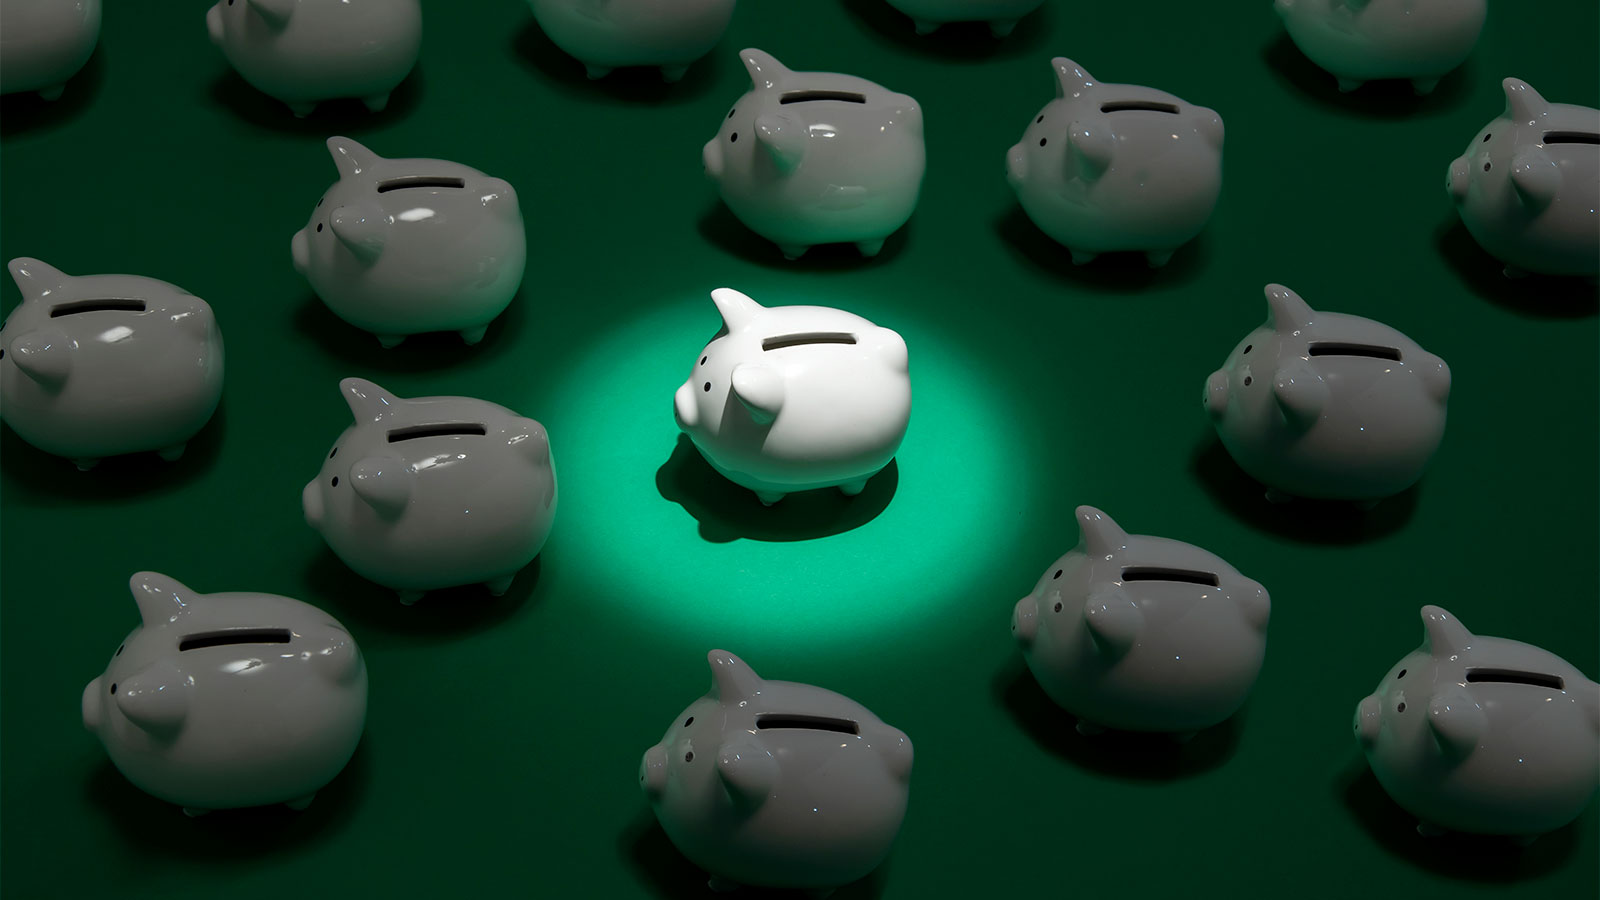 Many small white piggy banks on green surface with one piggy bank being spot lit